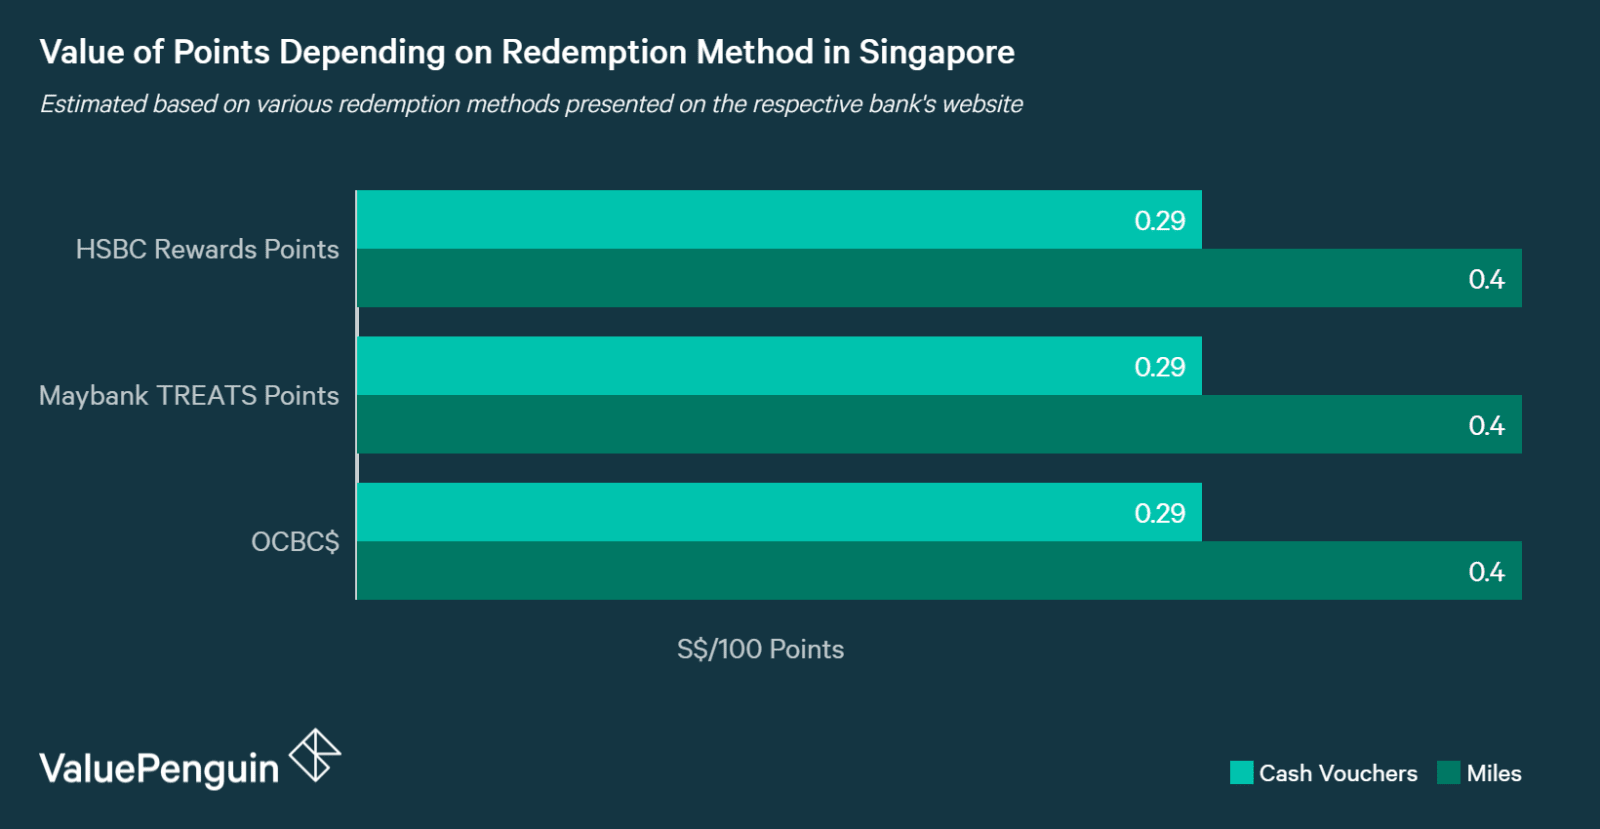 Points can be converted into cash vouchers at S$0.29 per 100 points vs S$0.40 per 100 points for miles